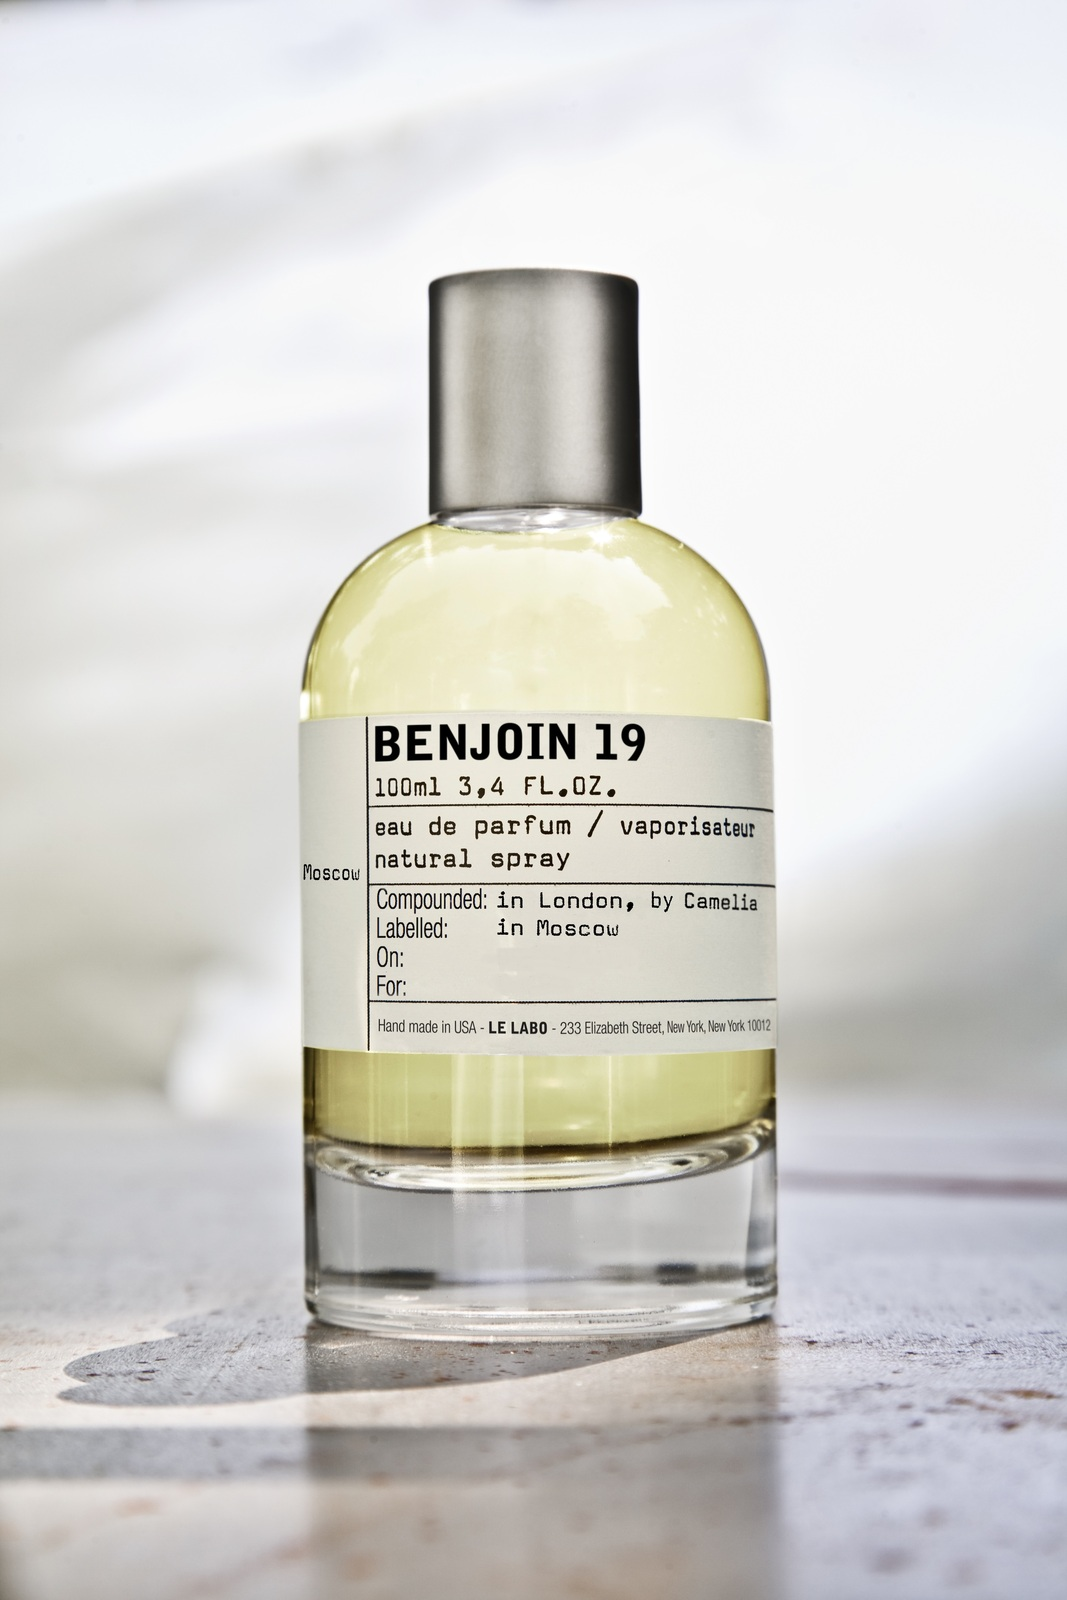 BENJOIN 19 by LE LABO 5ml Travel Spray B19 CEDAR BENZOIN MUSK RUSSIA Perfume